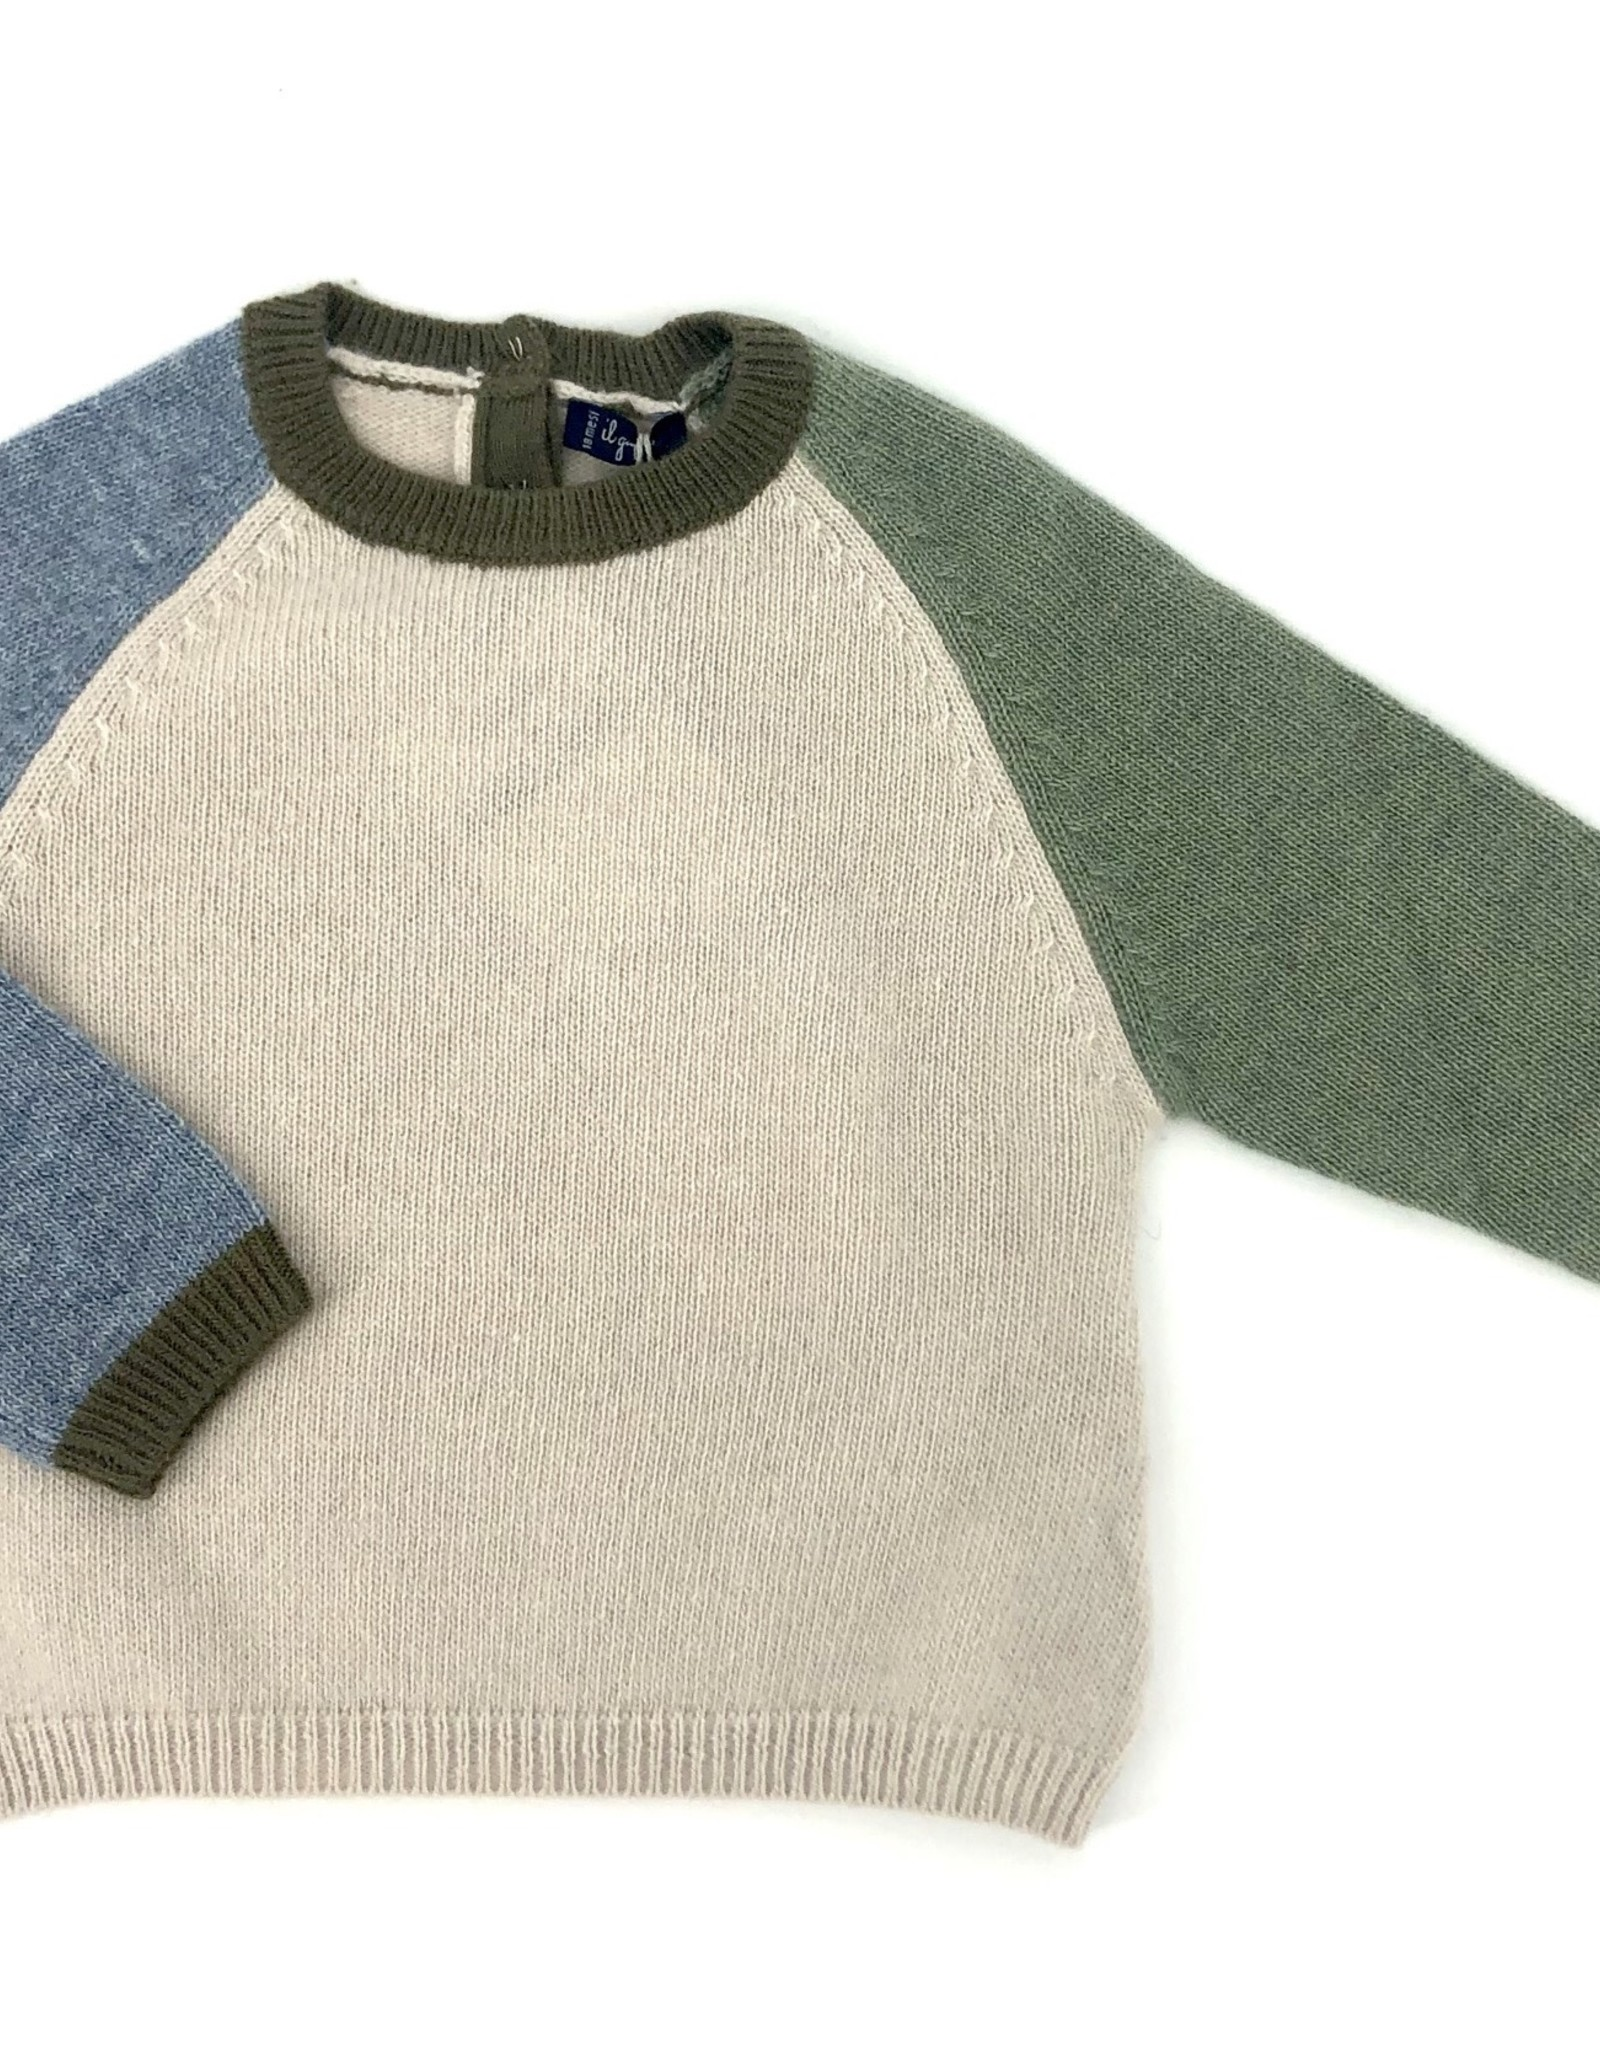 IL GUFO Sweater Natural/storm Blue